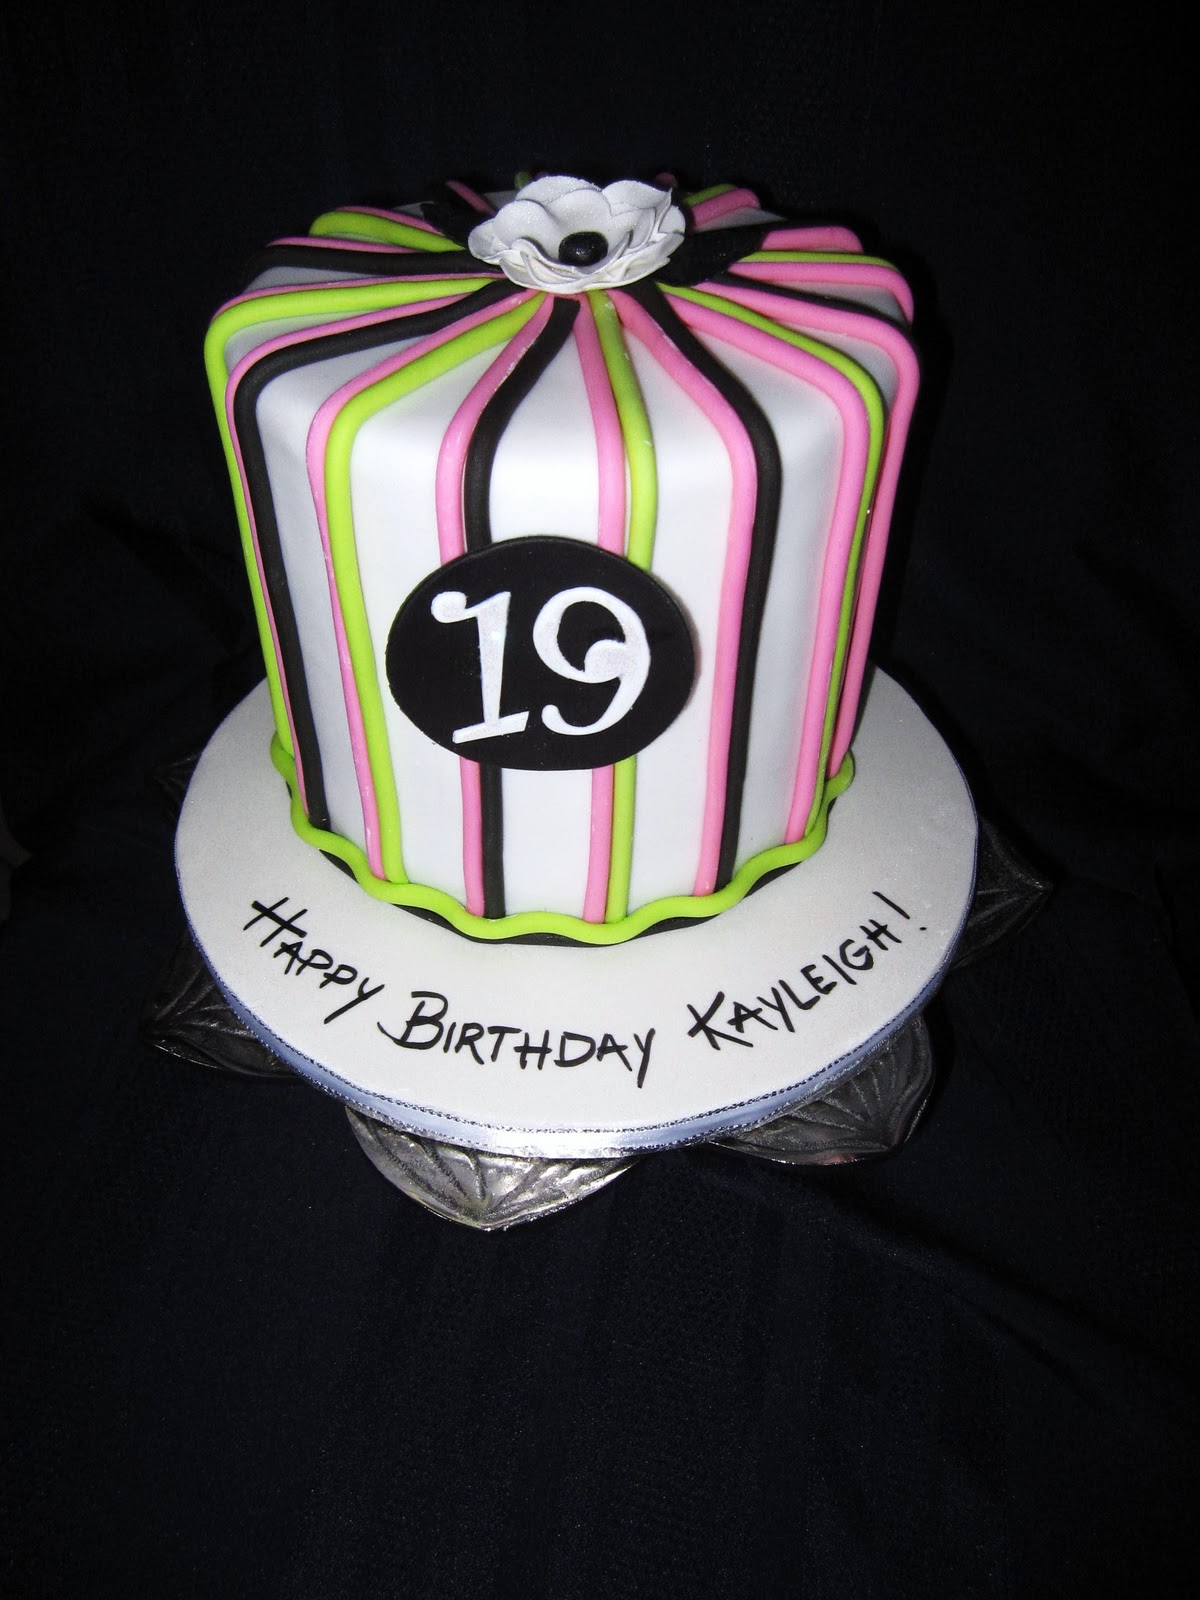 19th birthday cakes designs